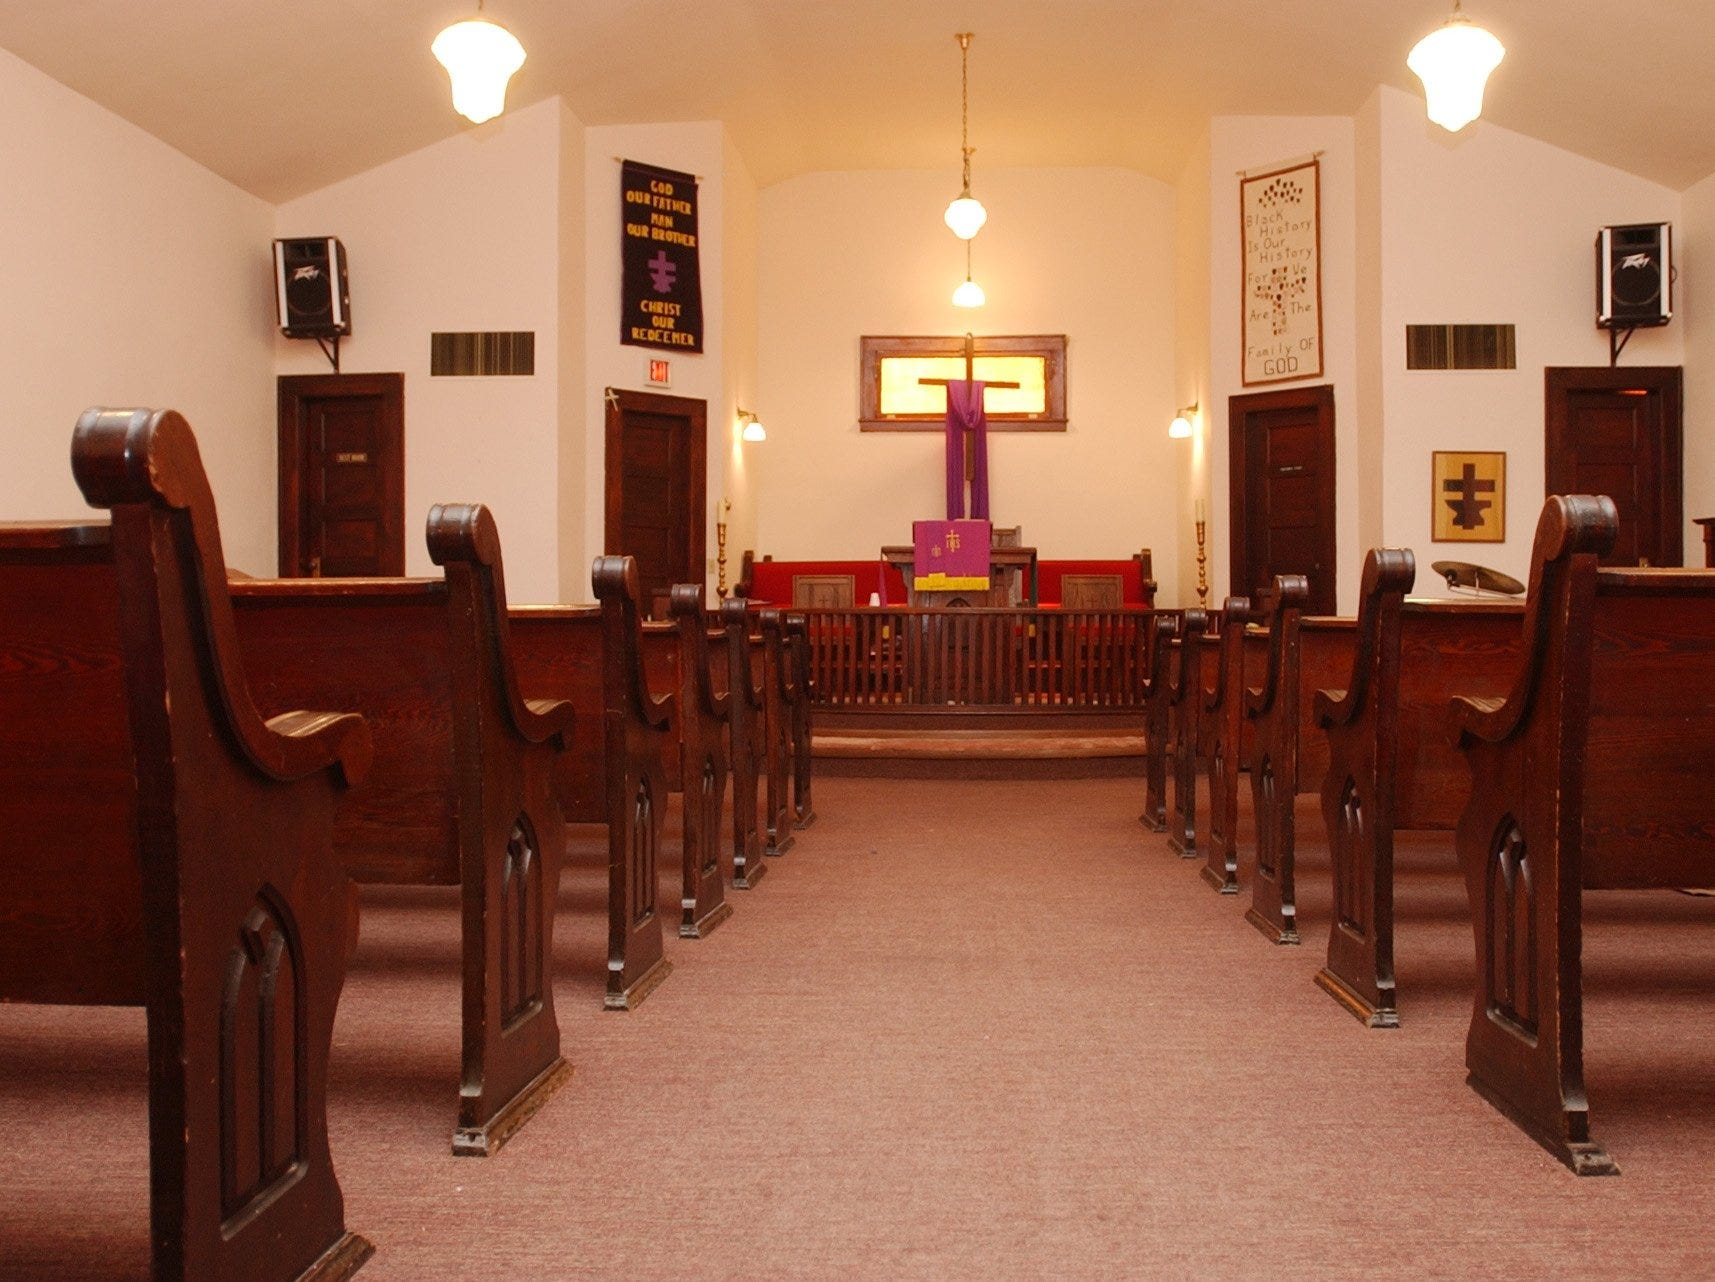 The Union Bethel African Methodist Episcopal Church, at 916 5th Ave S.,